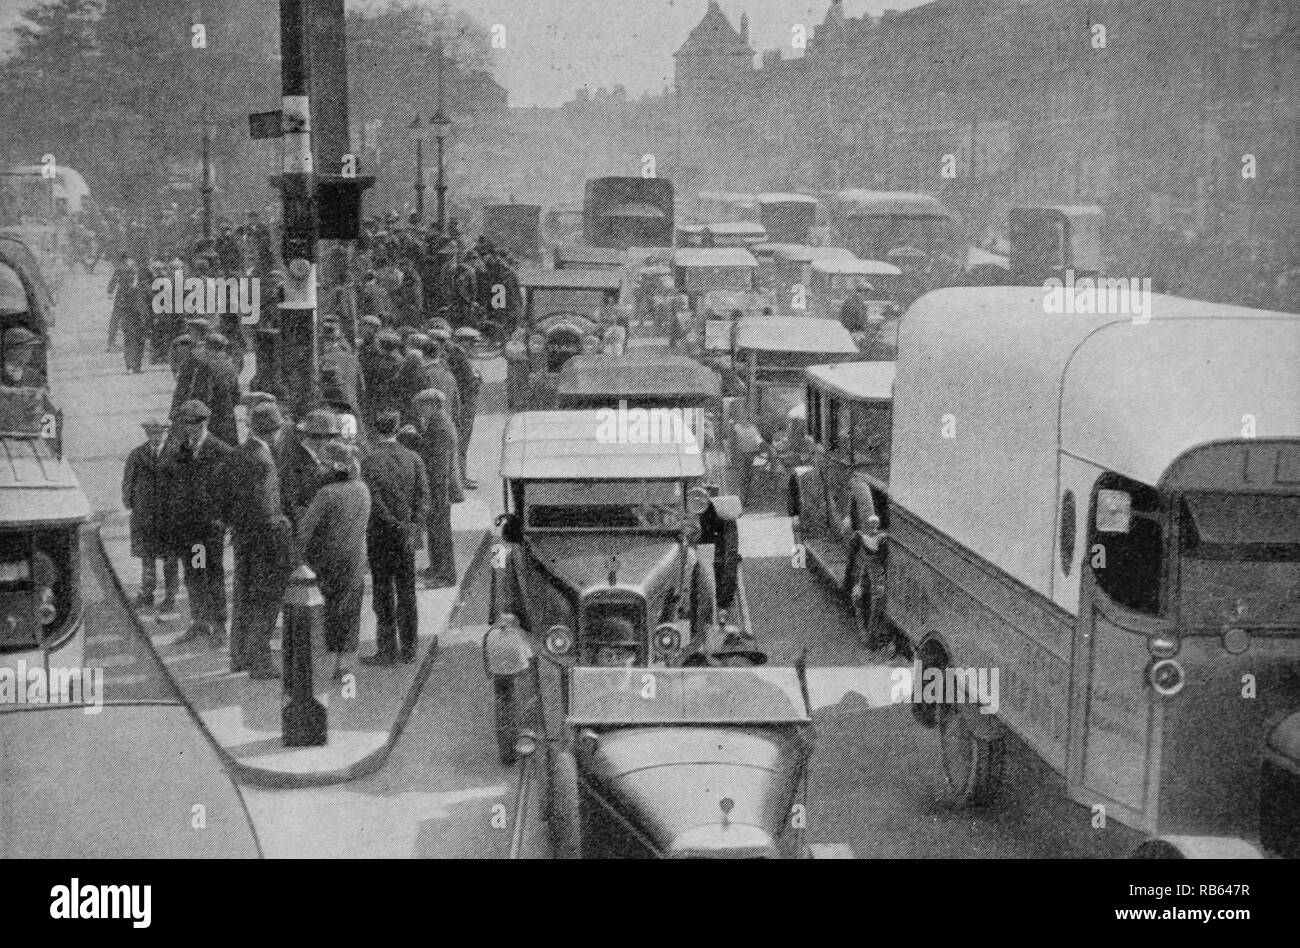 London traffic crowds the roads of the British capital during the nineteen twenties. - Stock Image